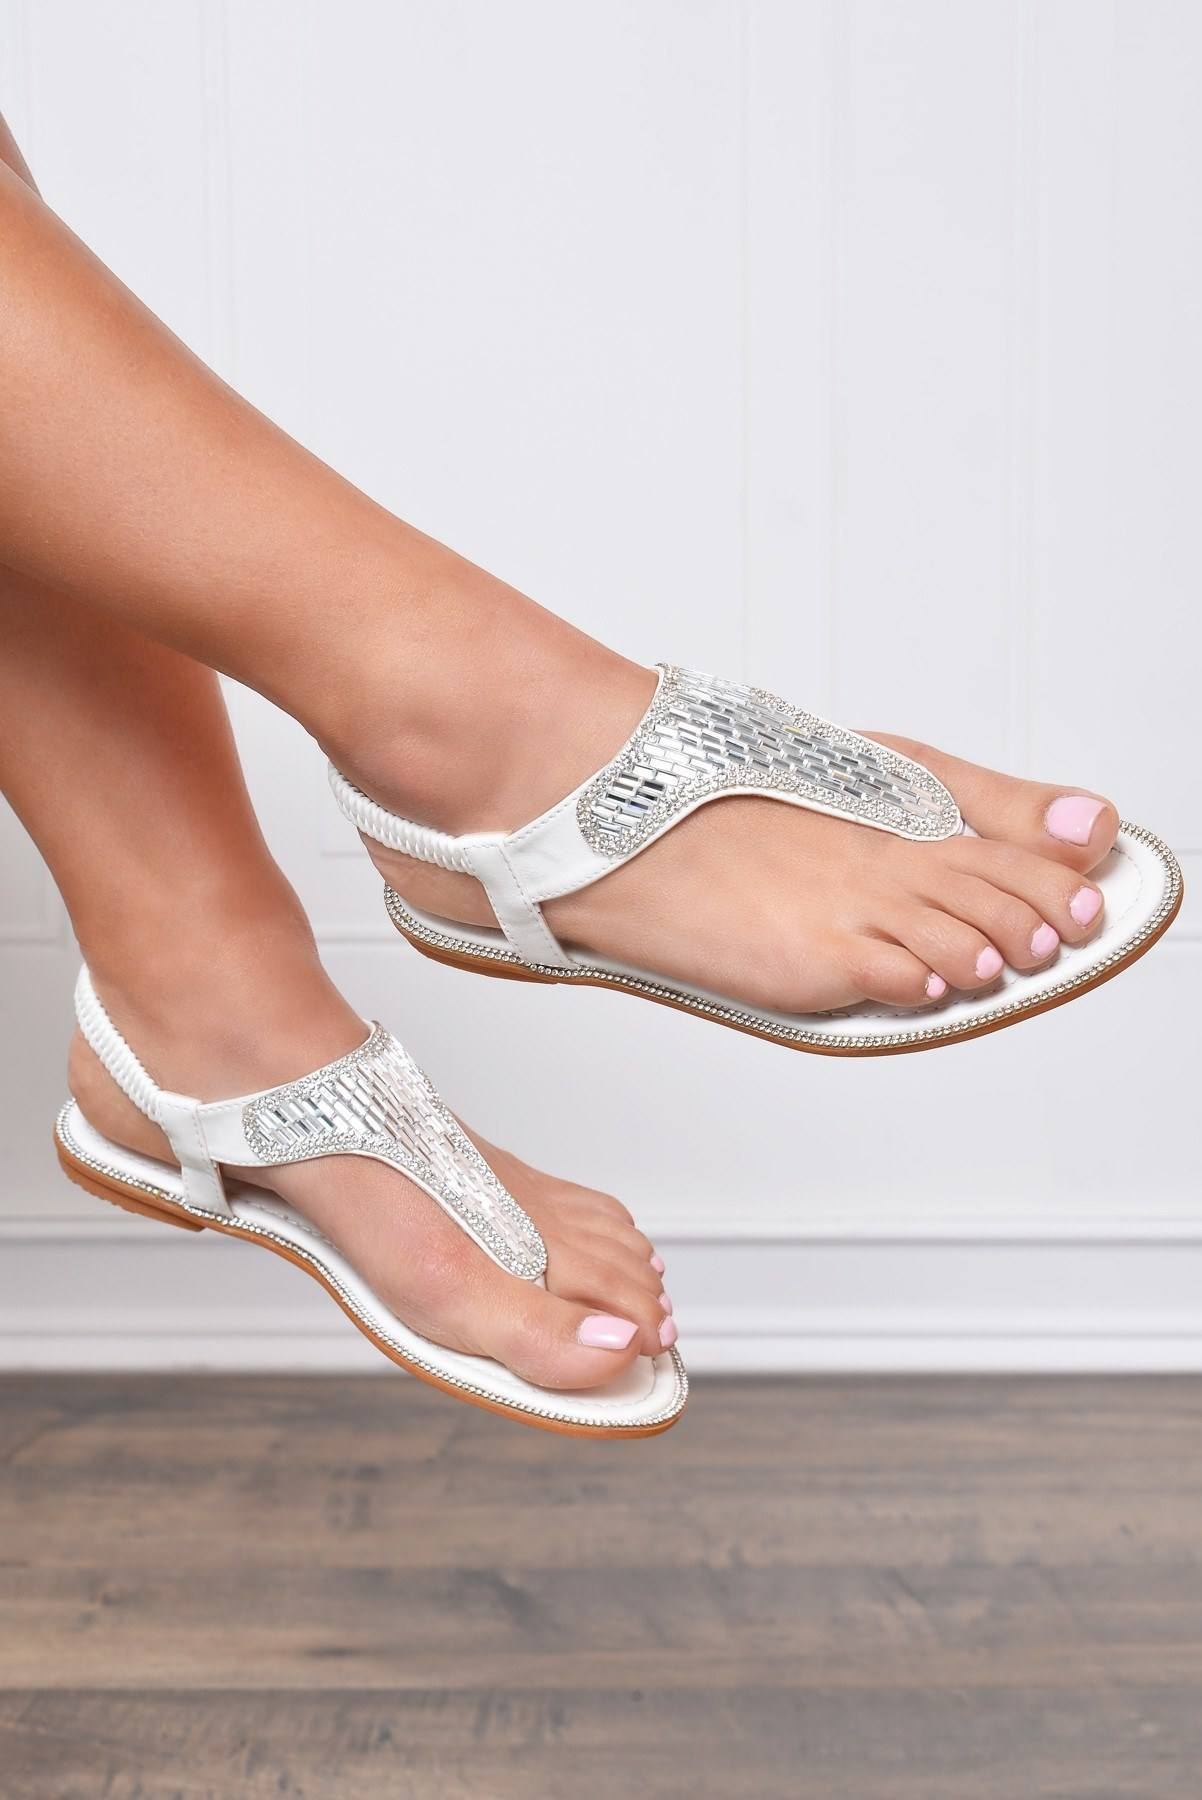 Malibu White Sandals - Fashion Effect Store  - 2